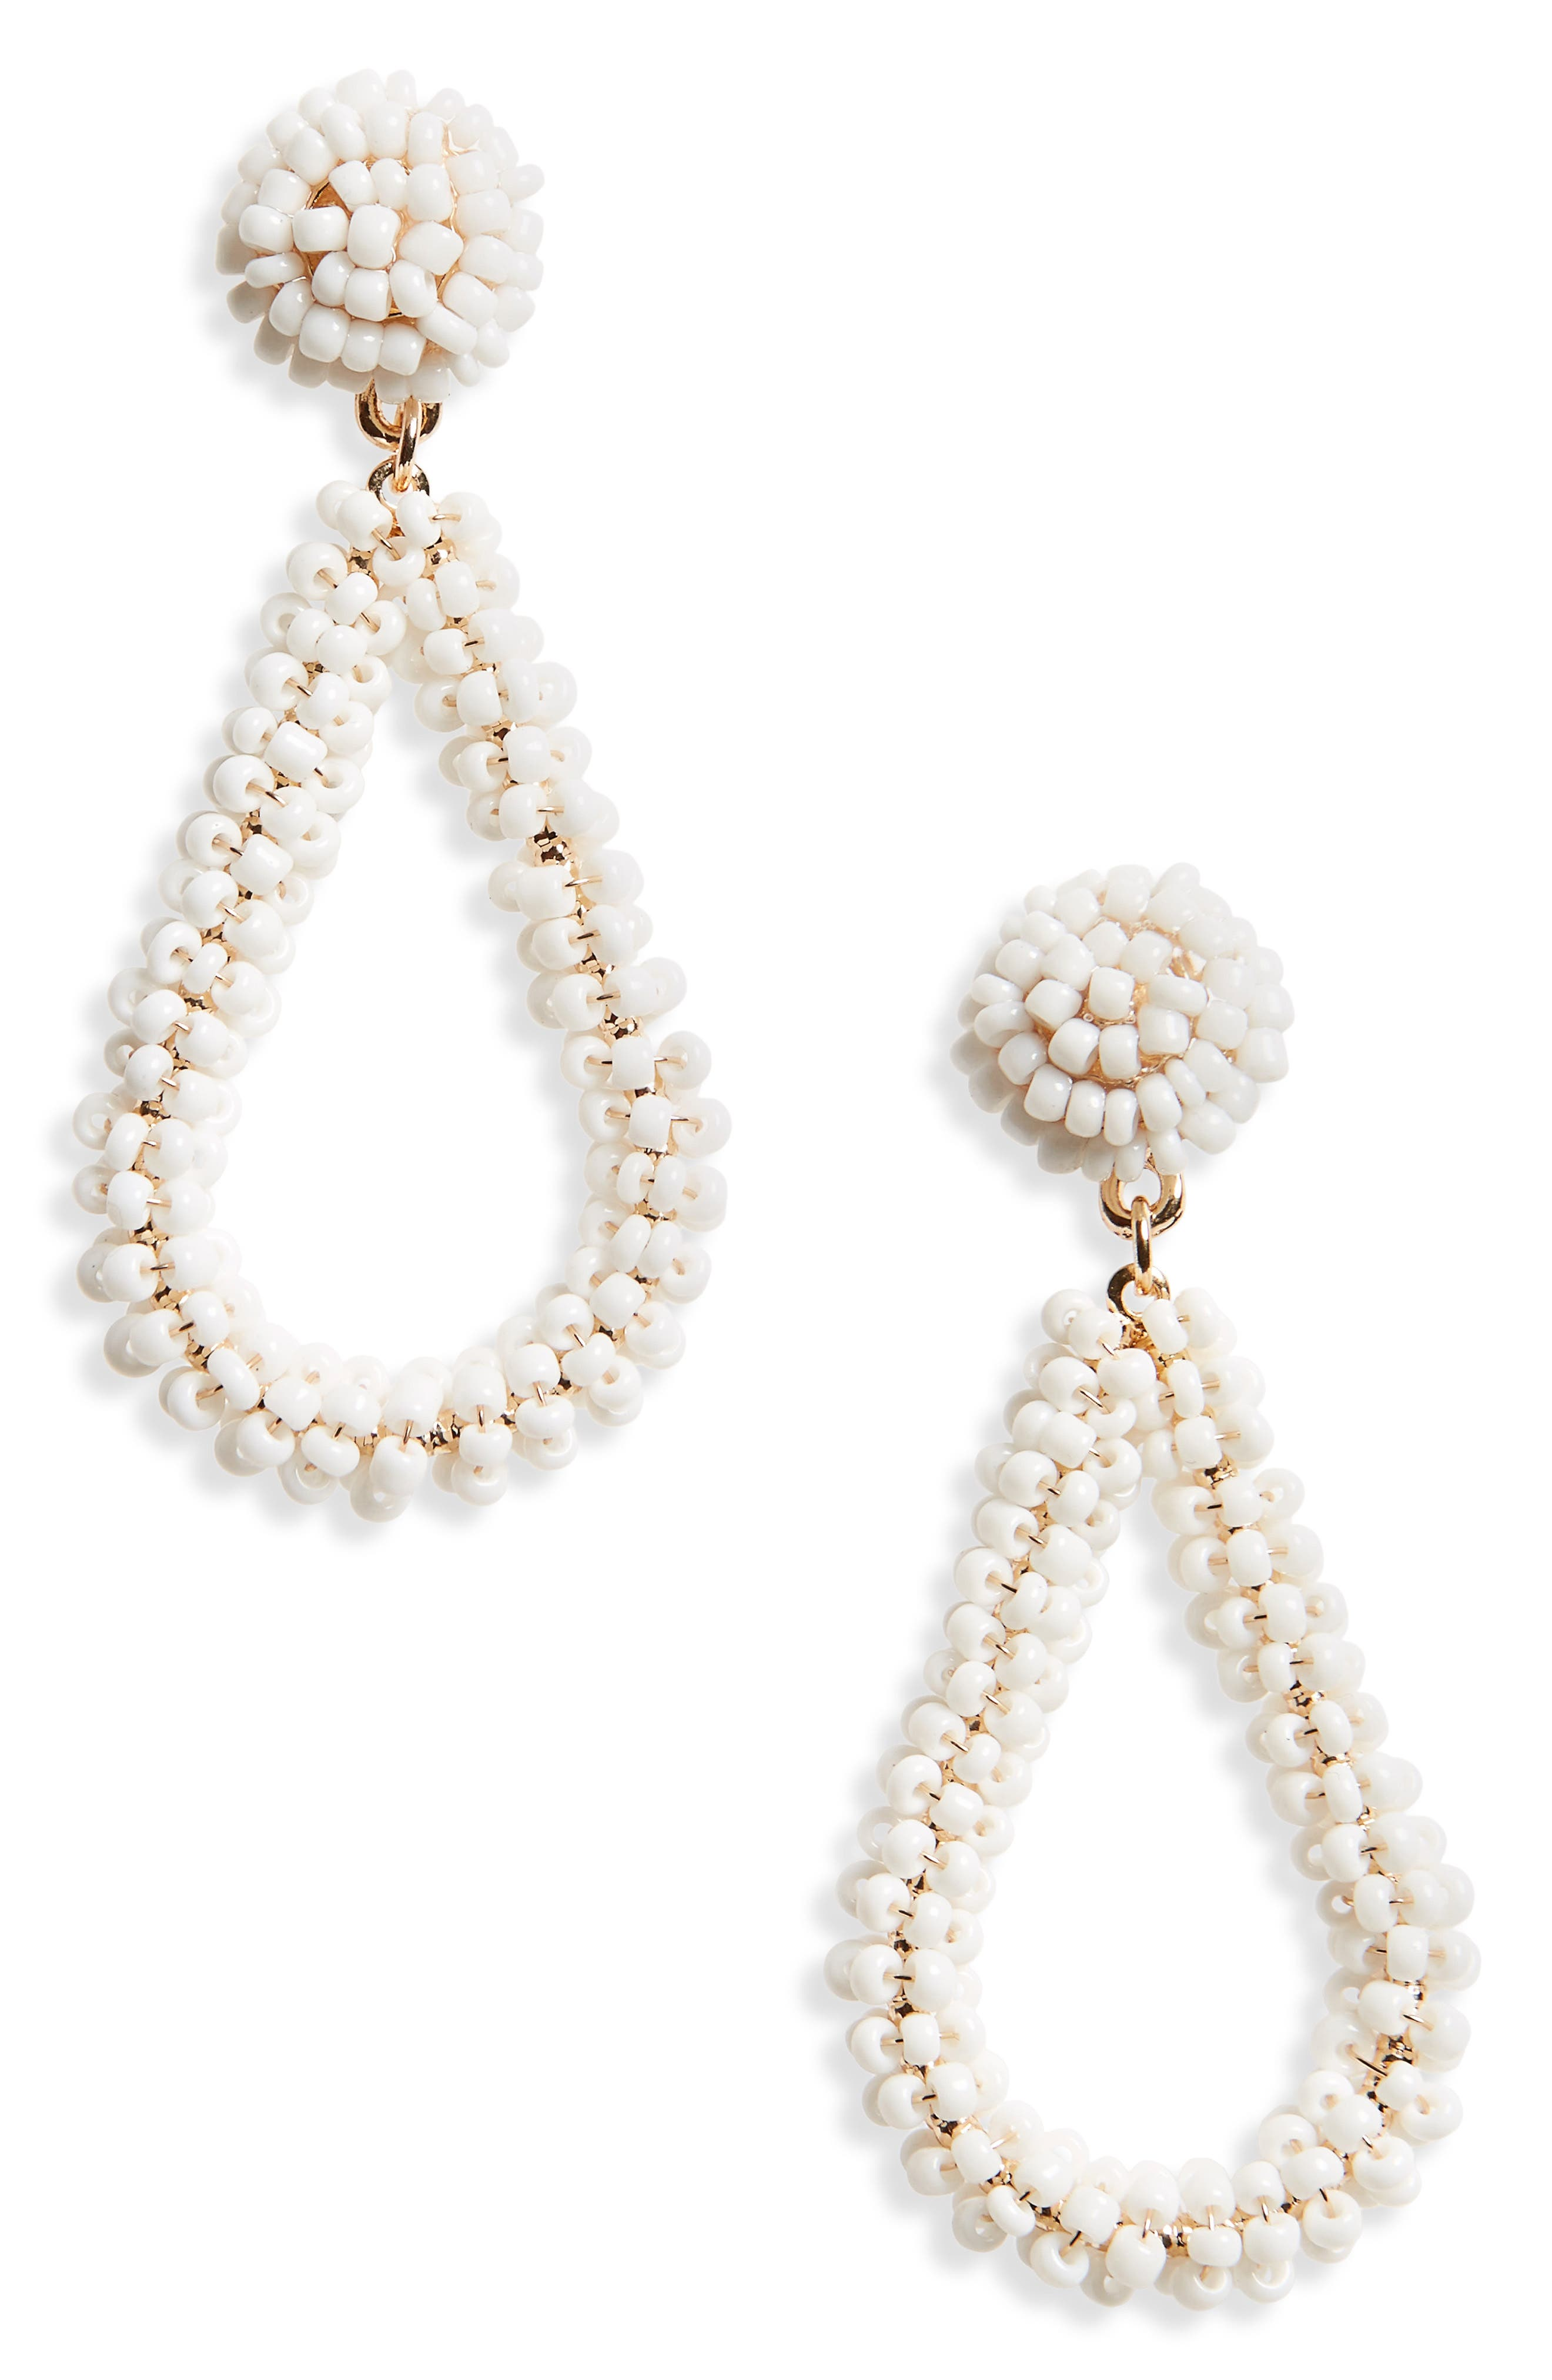 Bead Drop Earrings,                         Main,                         color, White